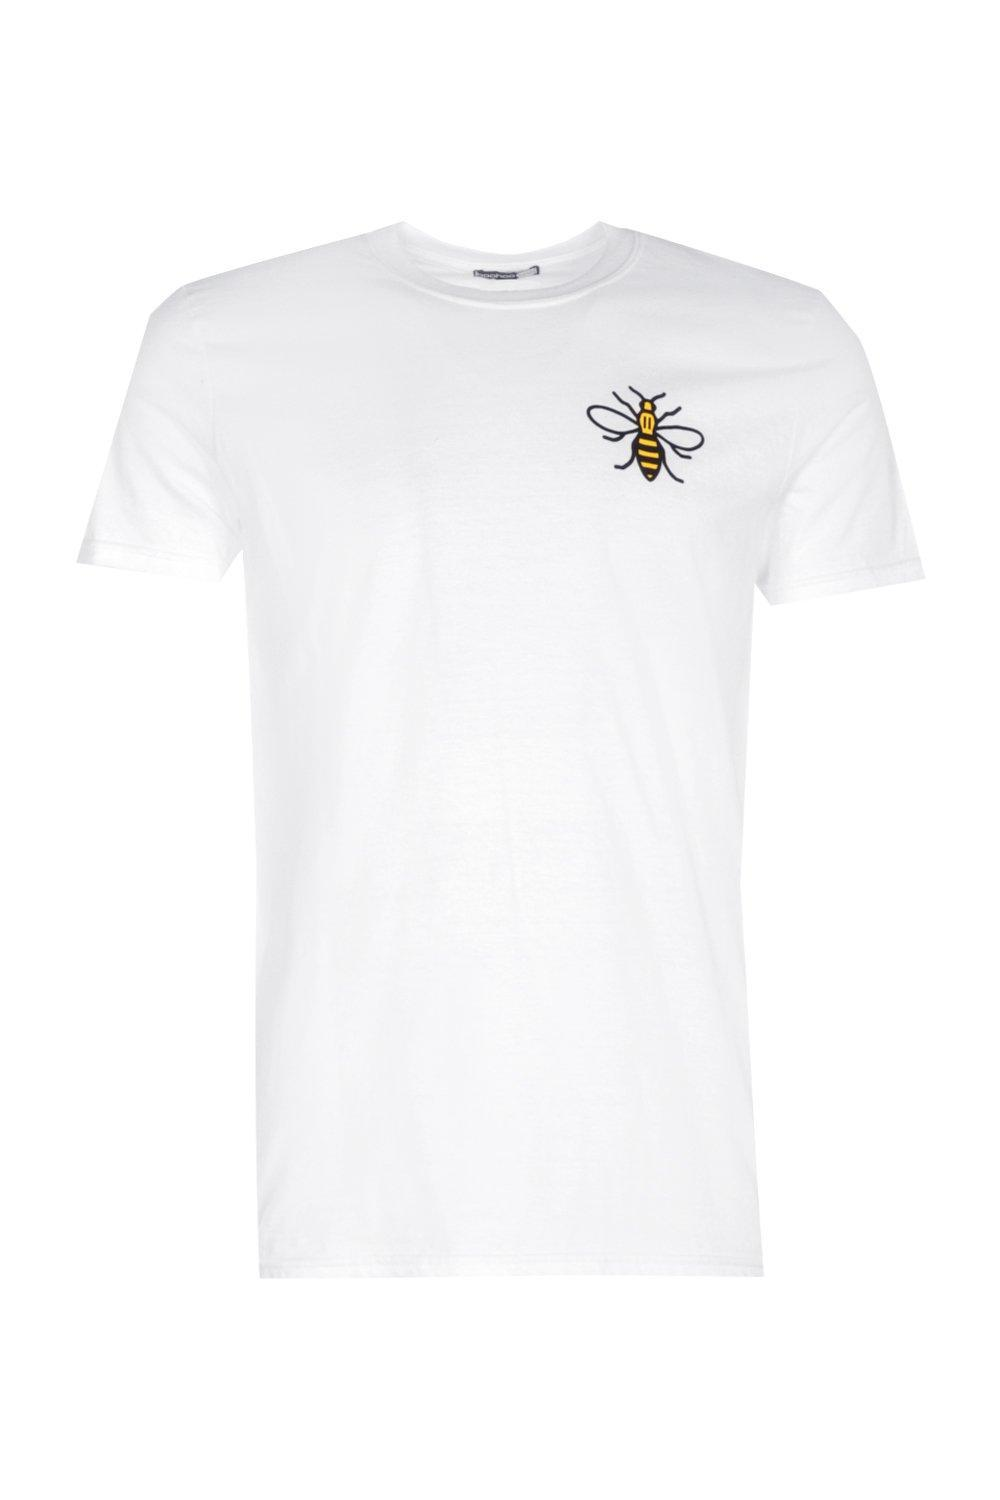 Lyst boohoo charity manchester bee print t shirt in for Charity printed t shirt